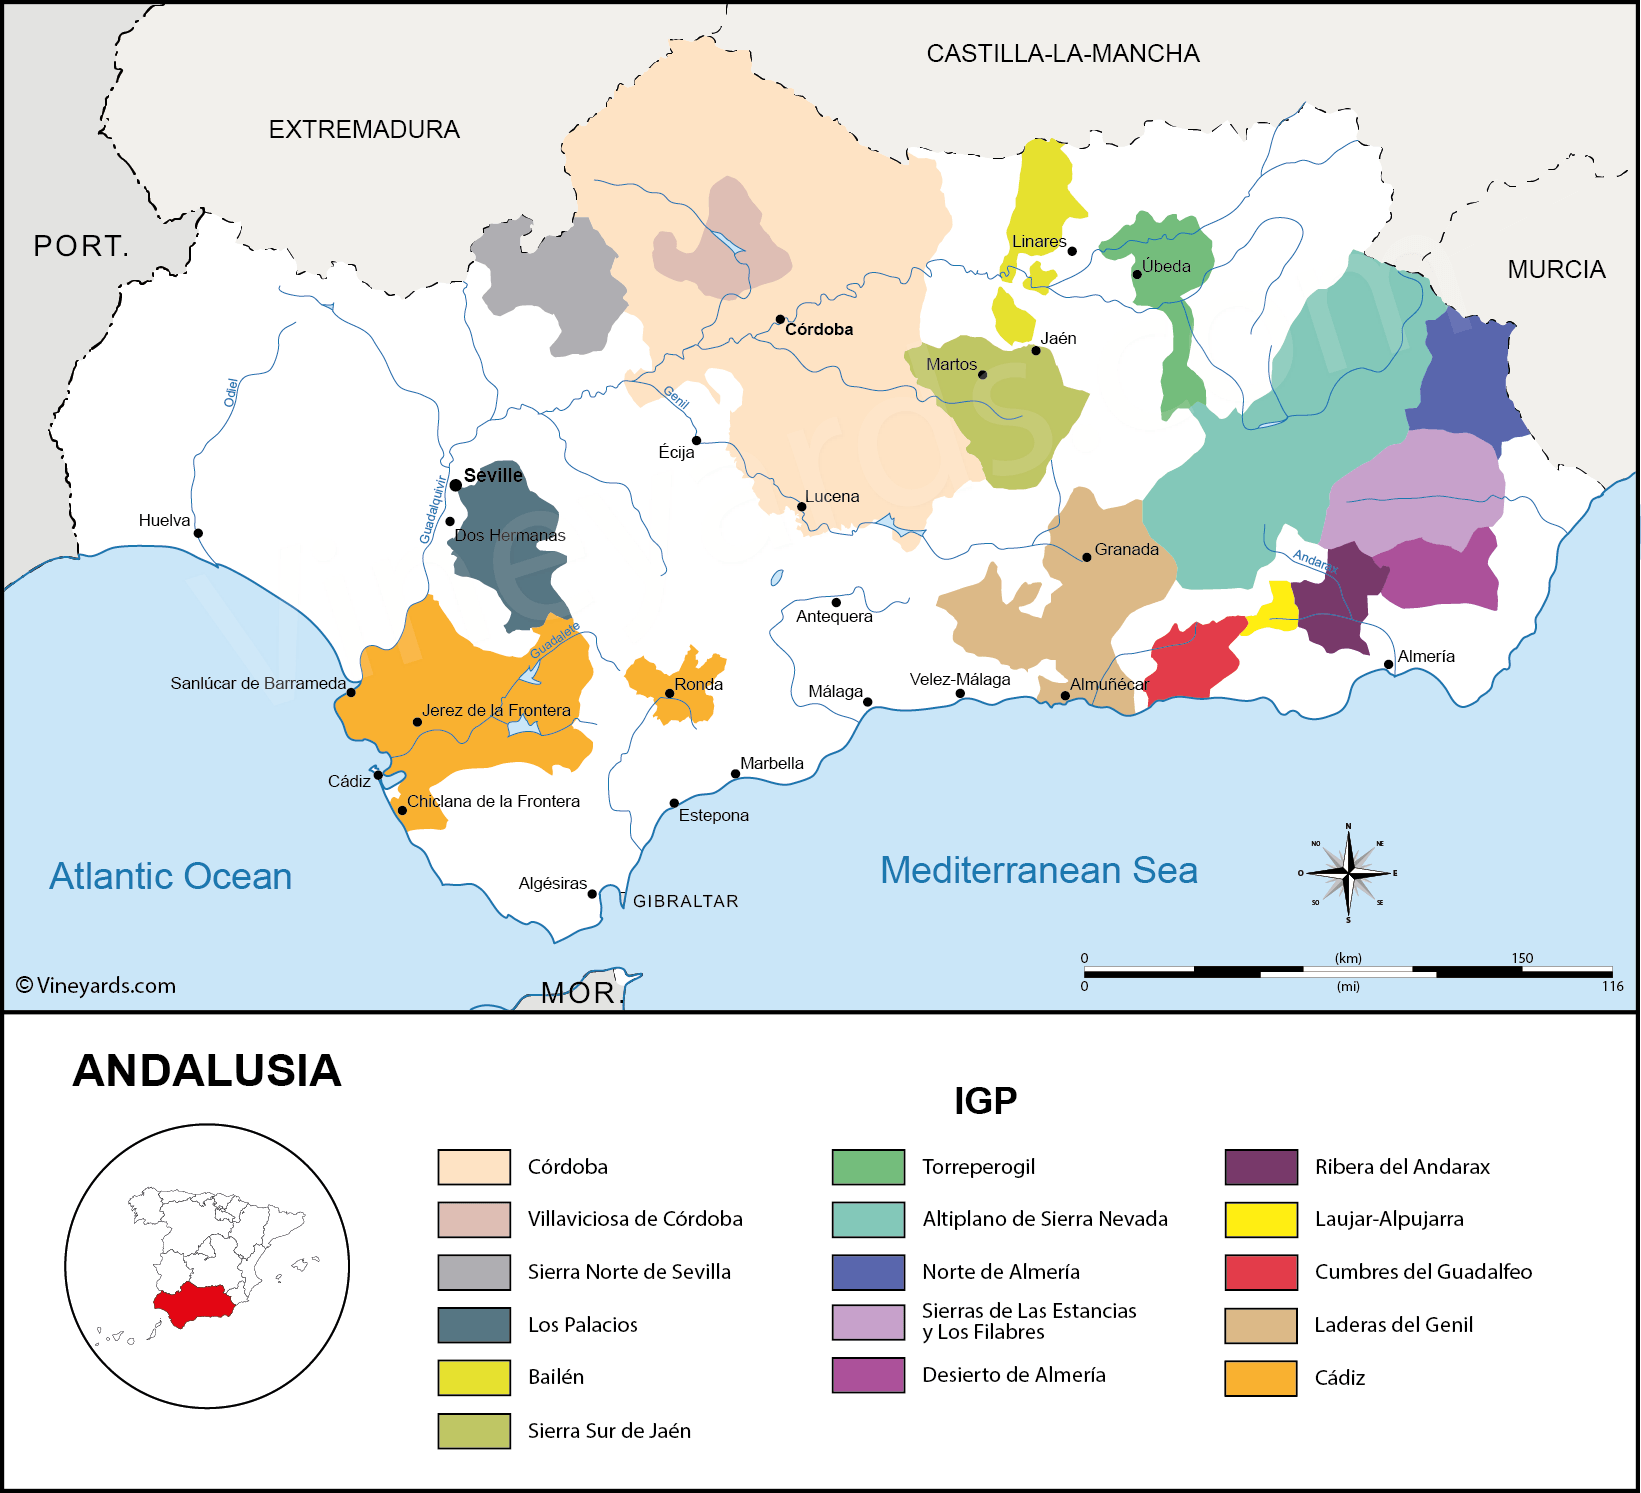 Wine Regions in Andalusia IGP